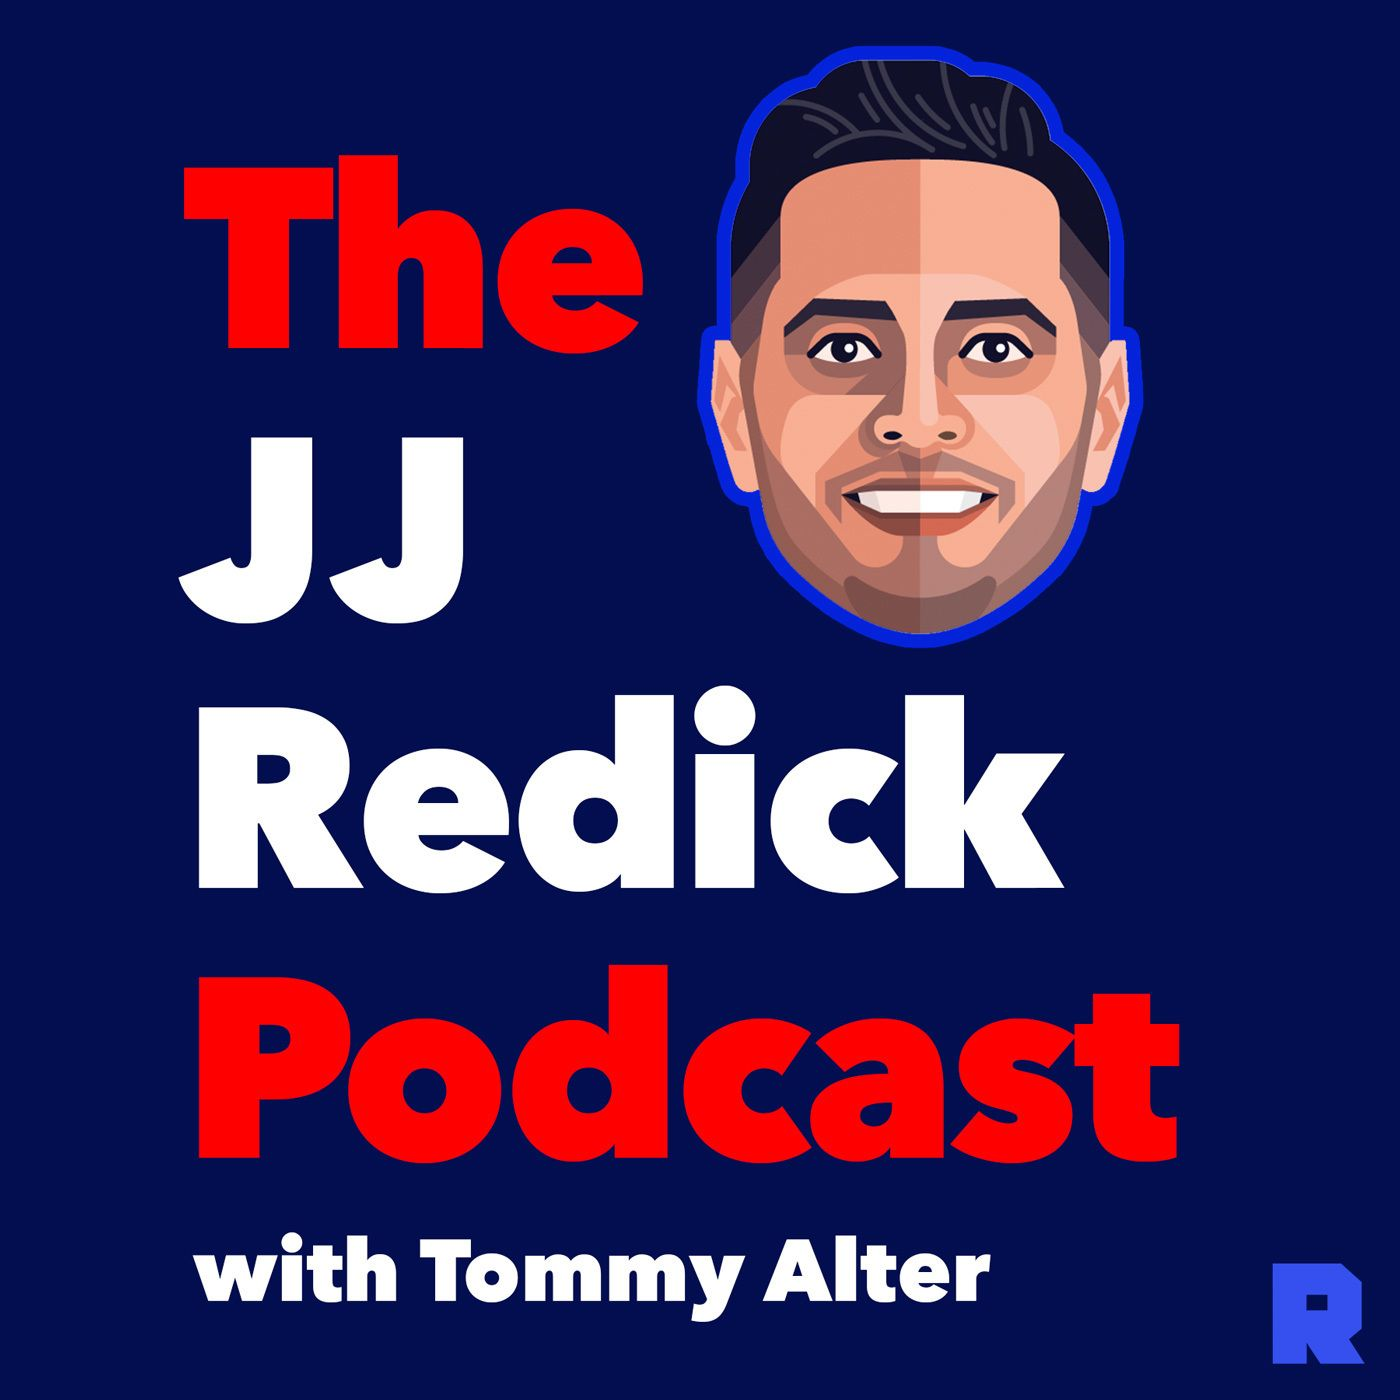 Jimmy Butler on His Philadelphia Fallout, the Benefits of Miami, and Mark Wahlberg | The JJ Redick Podcast